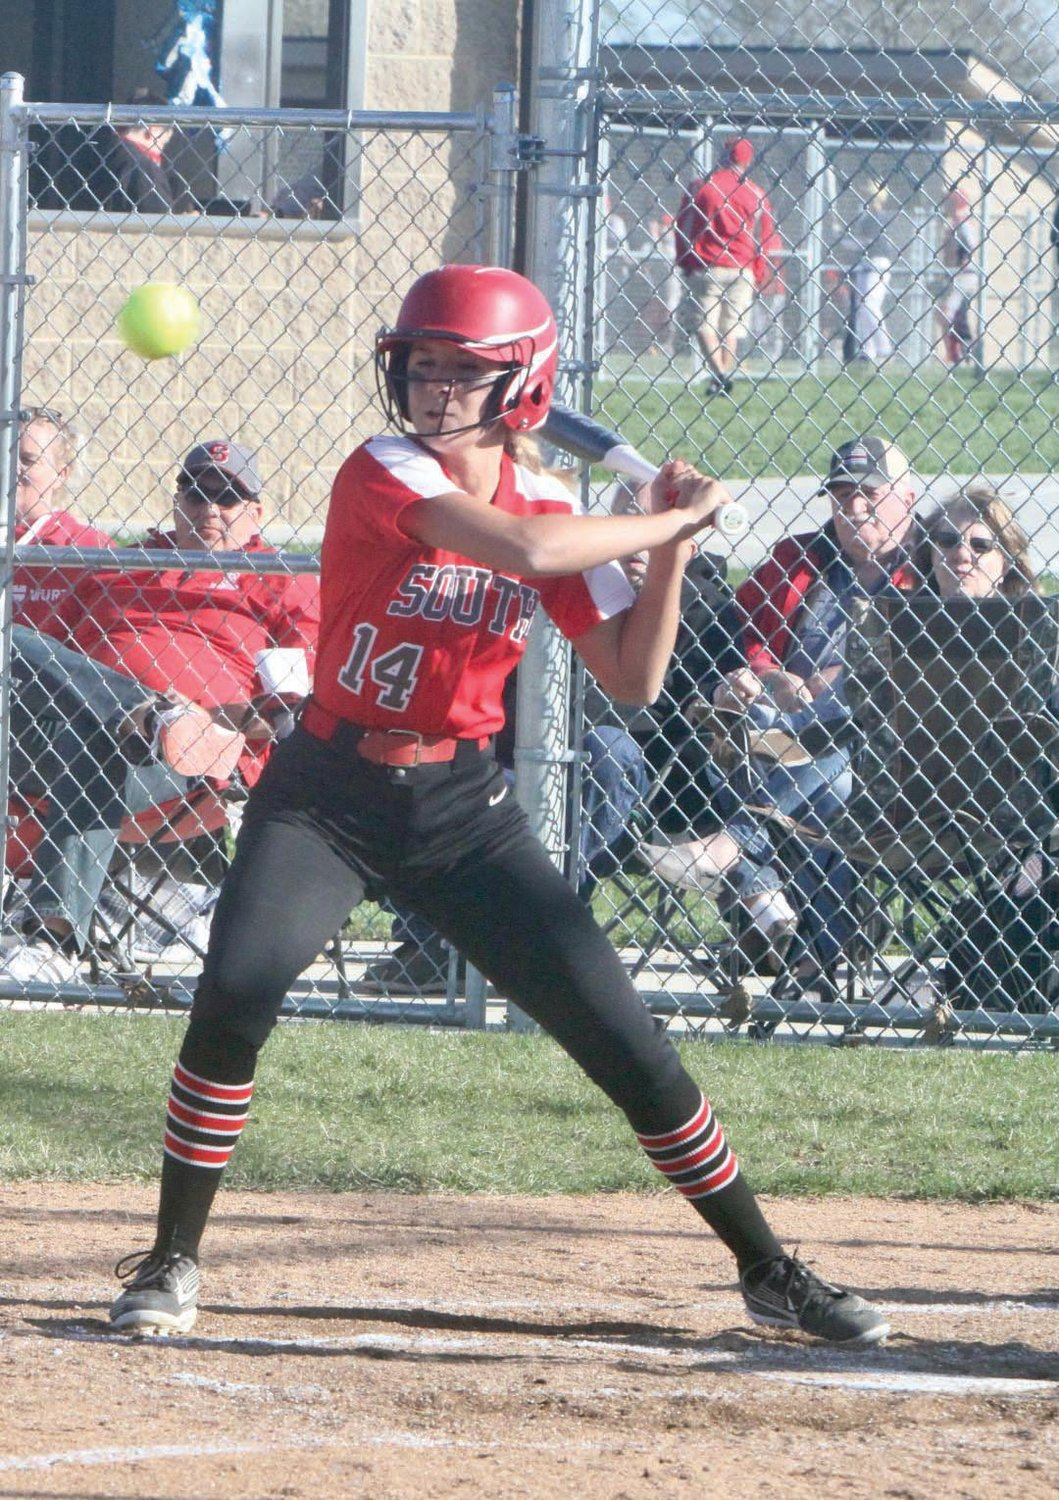 Southmont senior Marissa Craig waits for a pitch against Tri-West.